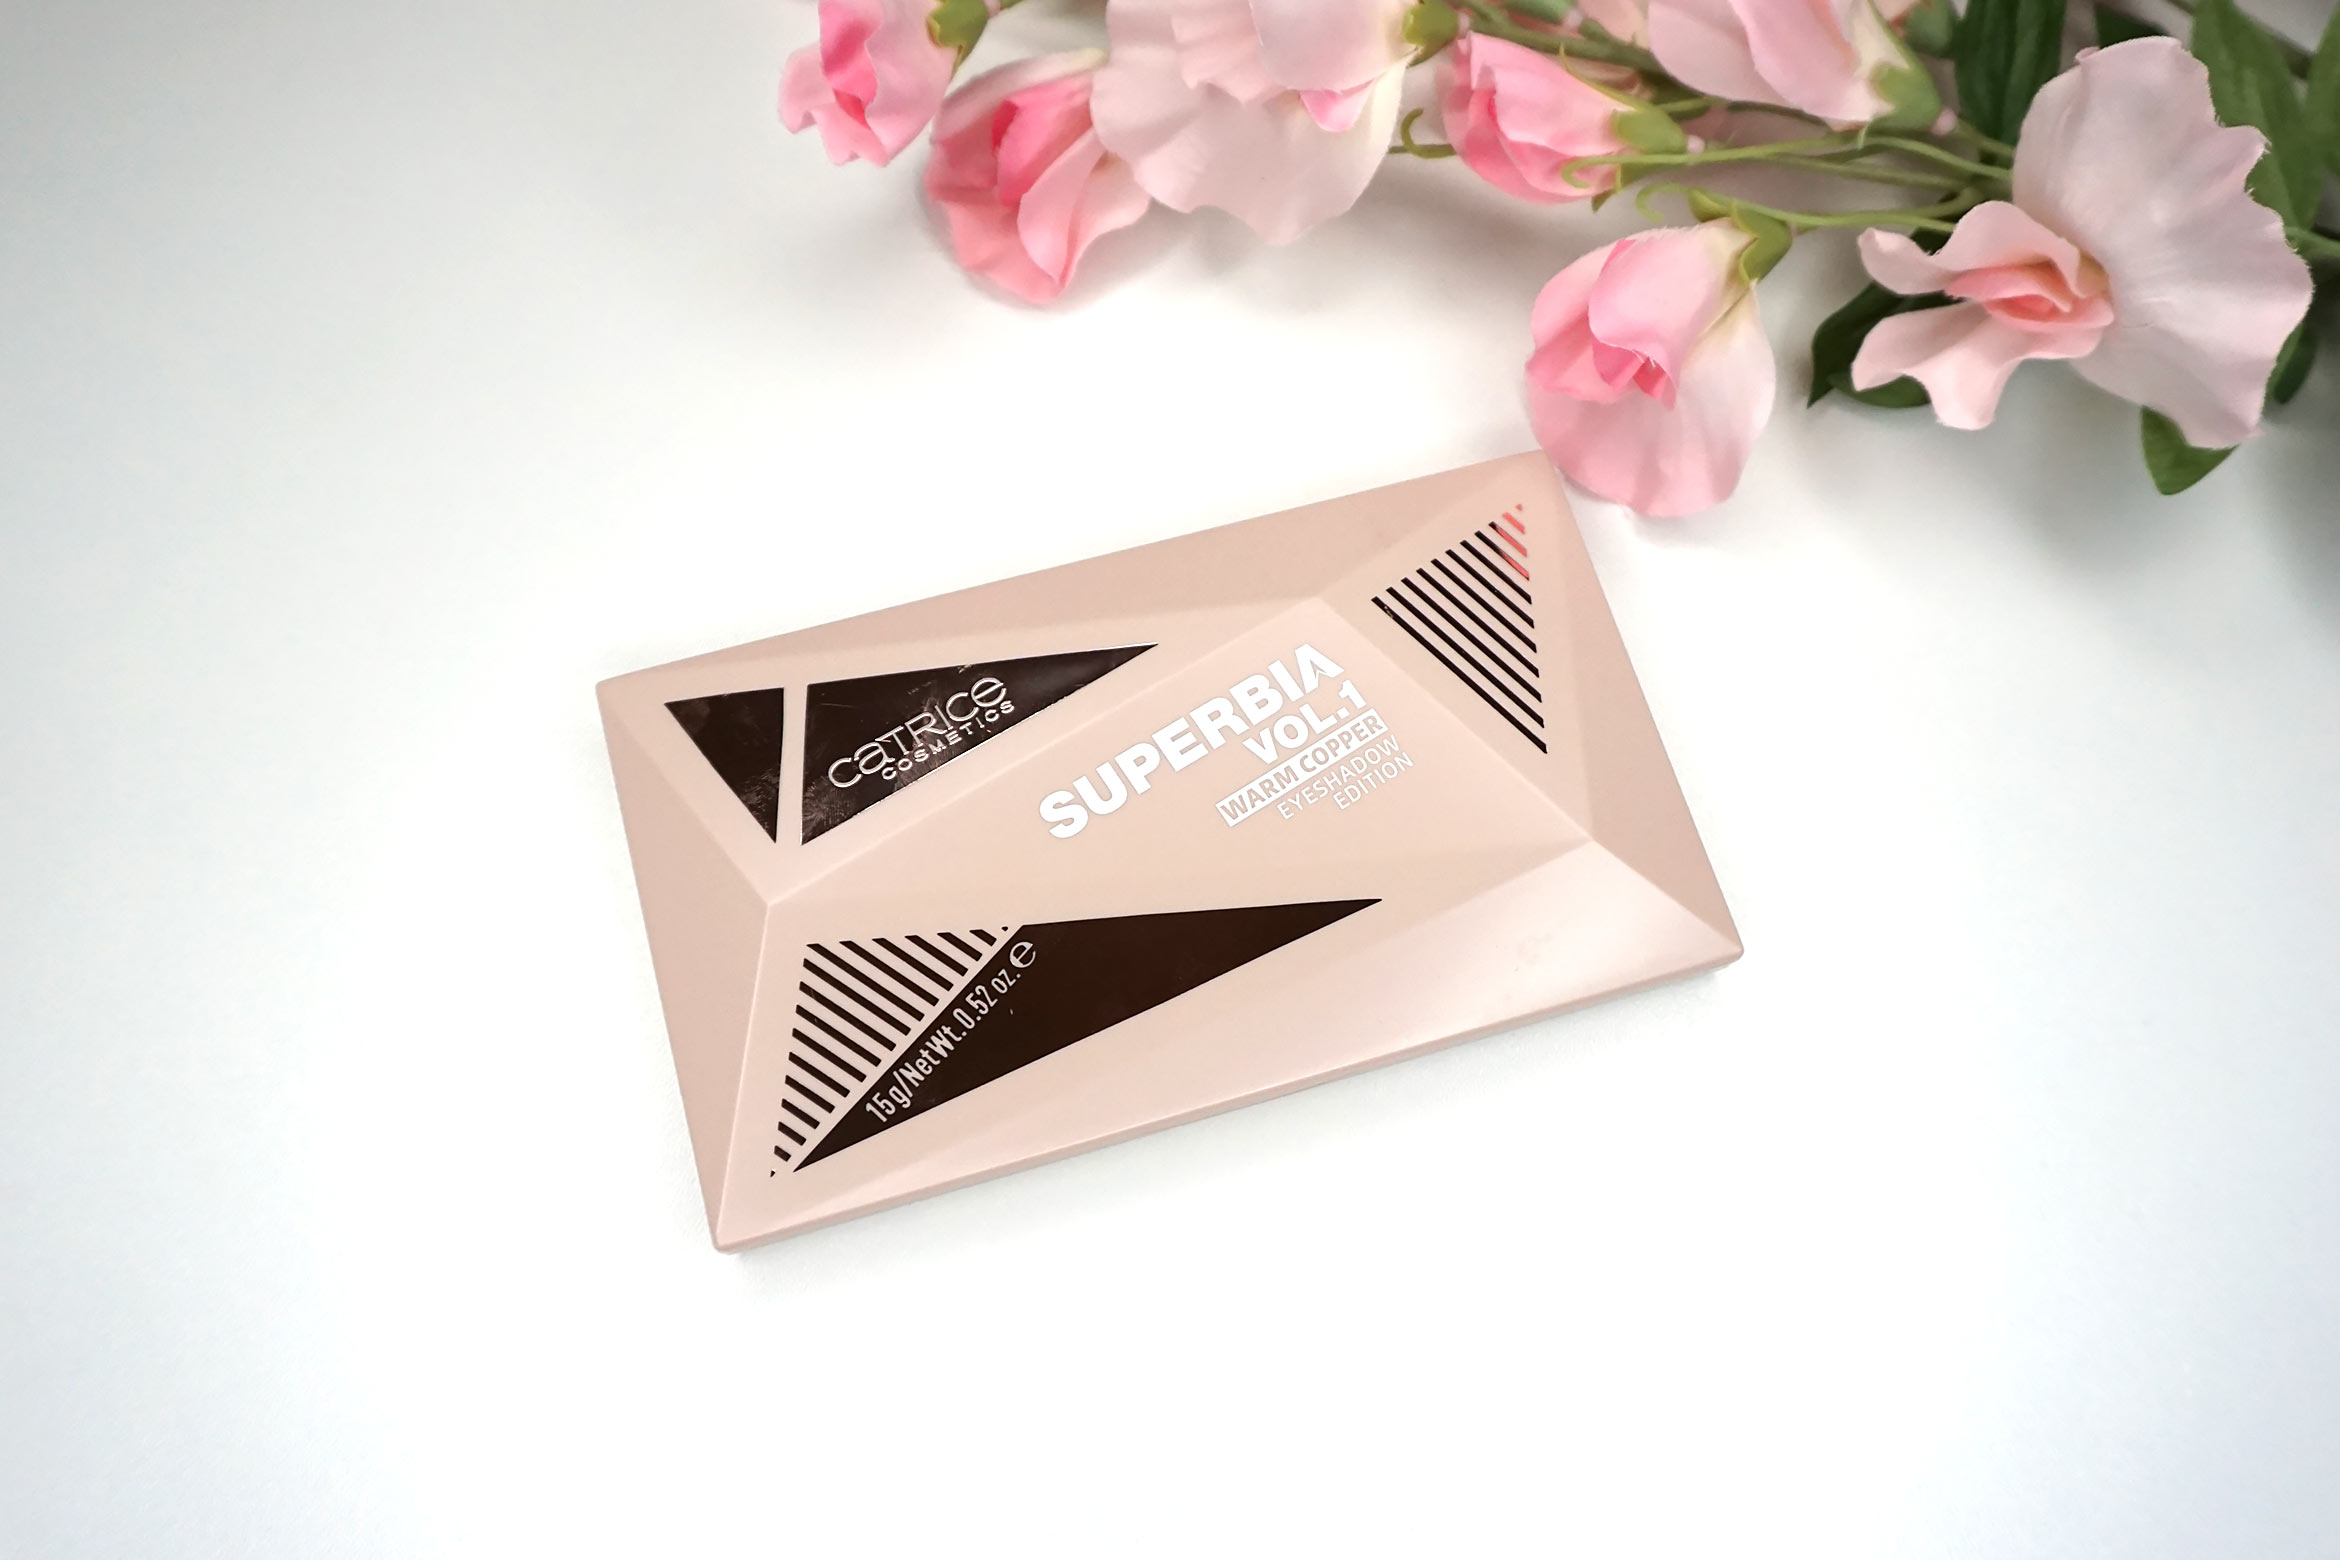 Catrice-Superbia-Vol.-1-warm-copper-review